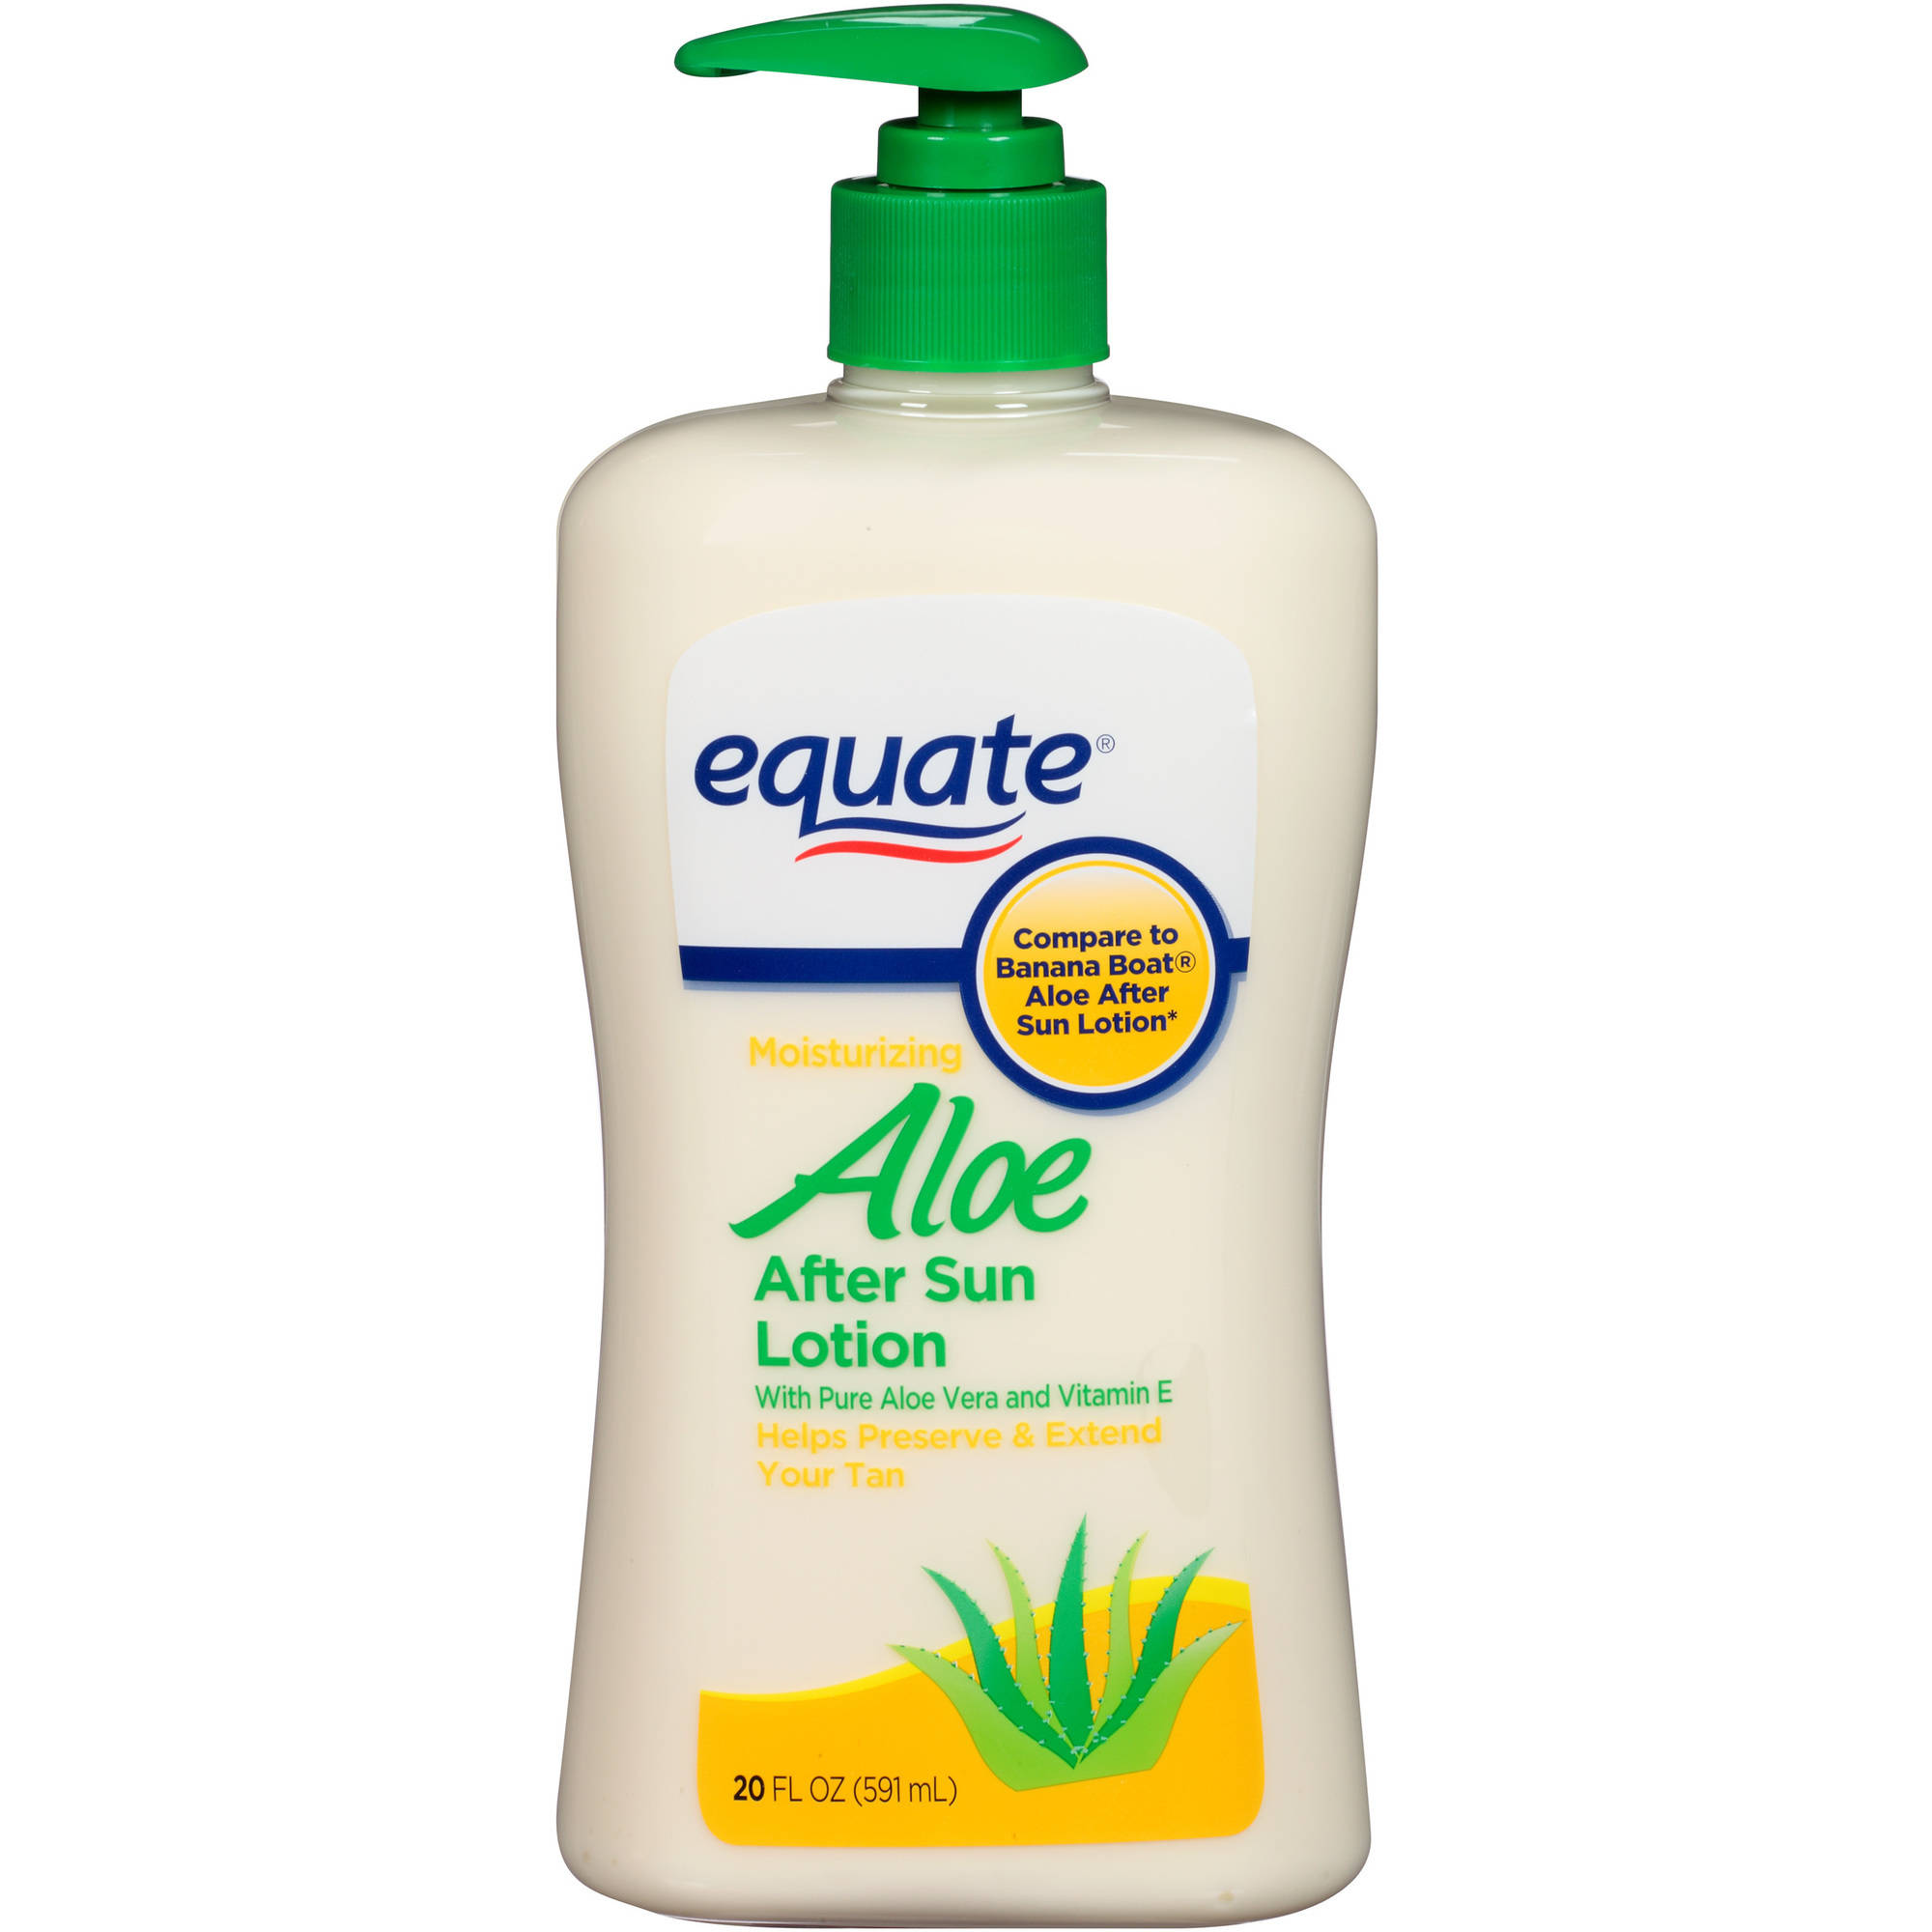 Equate Aloe After Sun Lotion, 20 fl oz